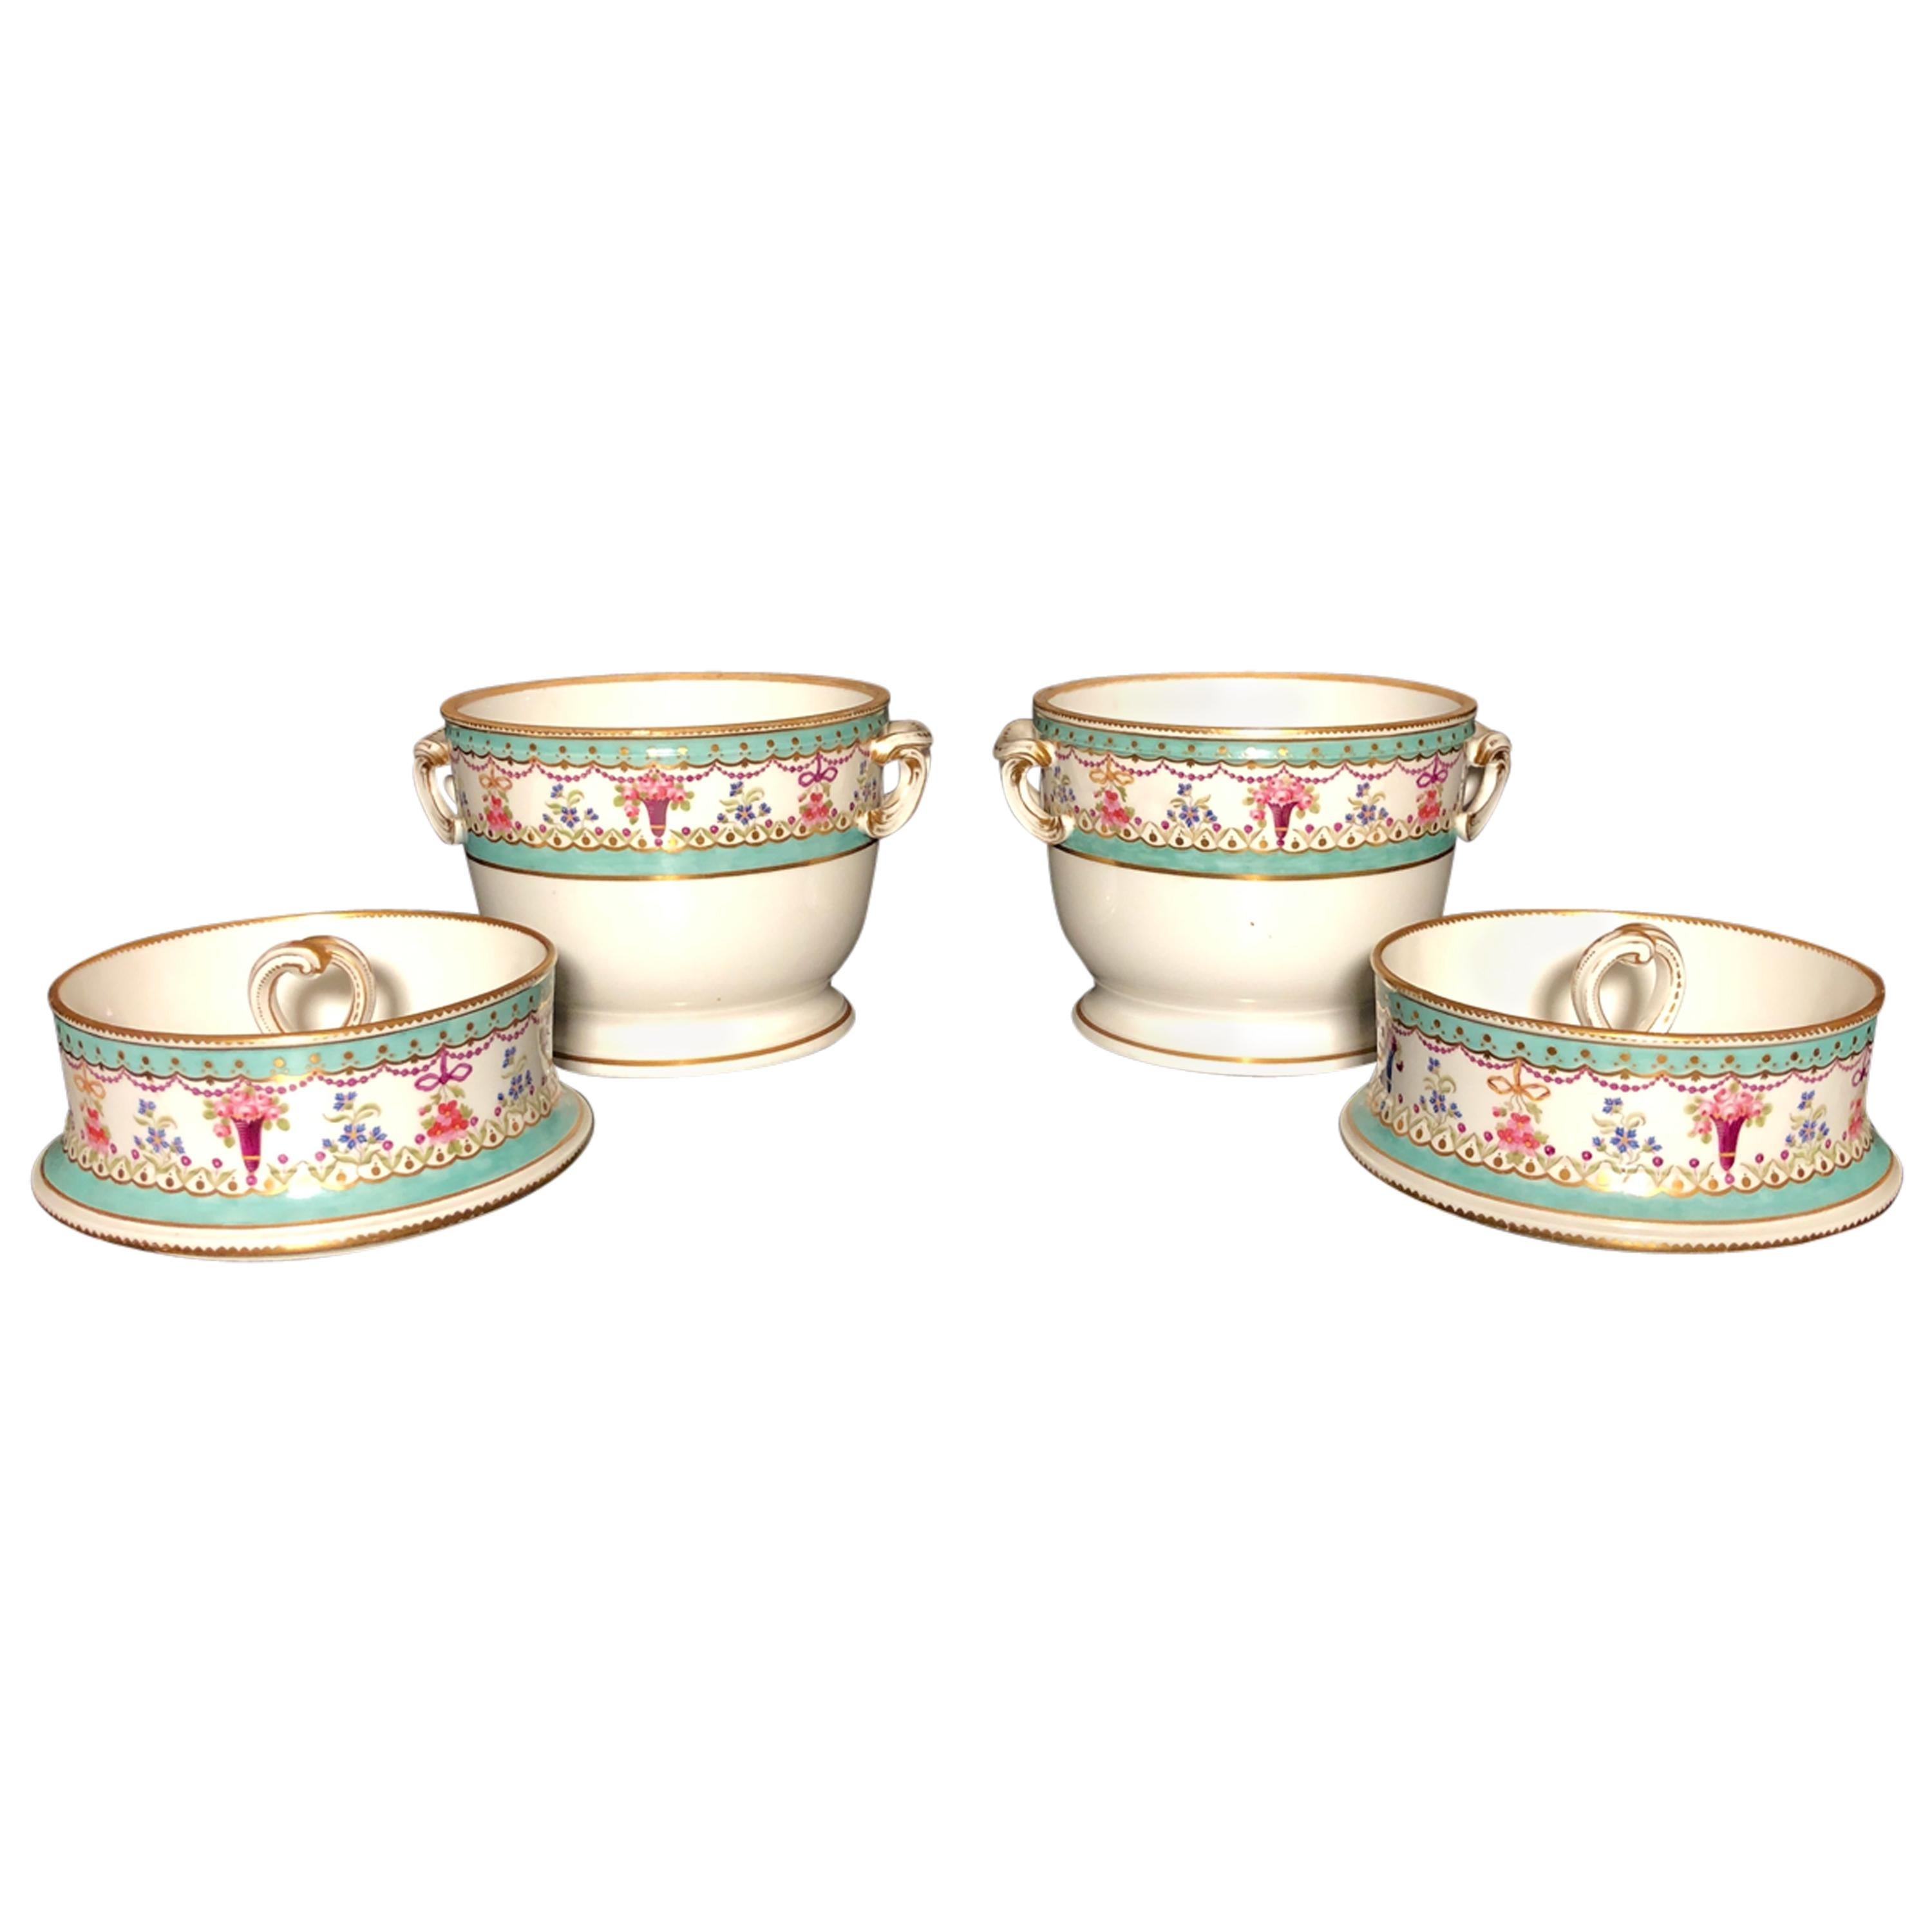 Pair of Porcelain Continental Fruit Coolers